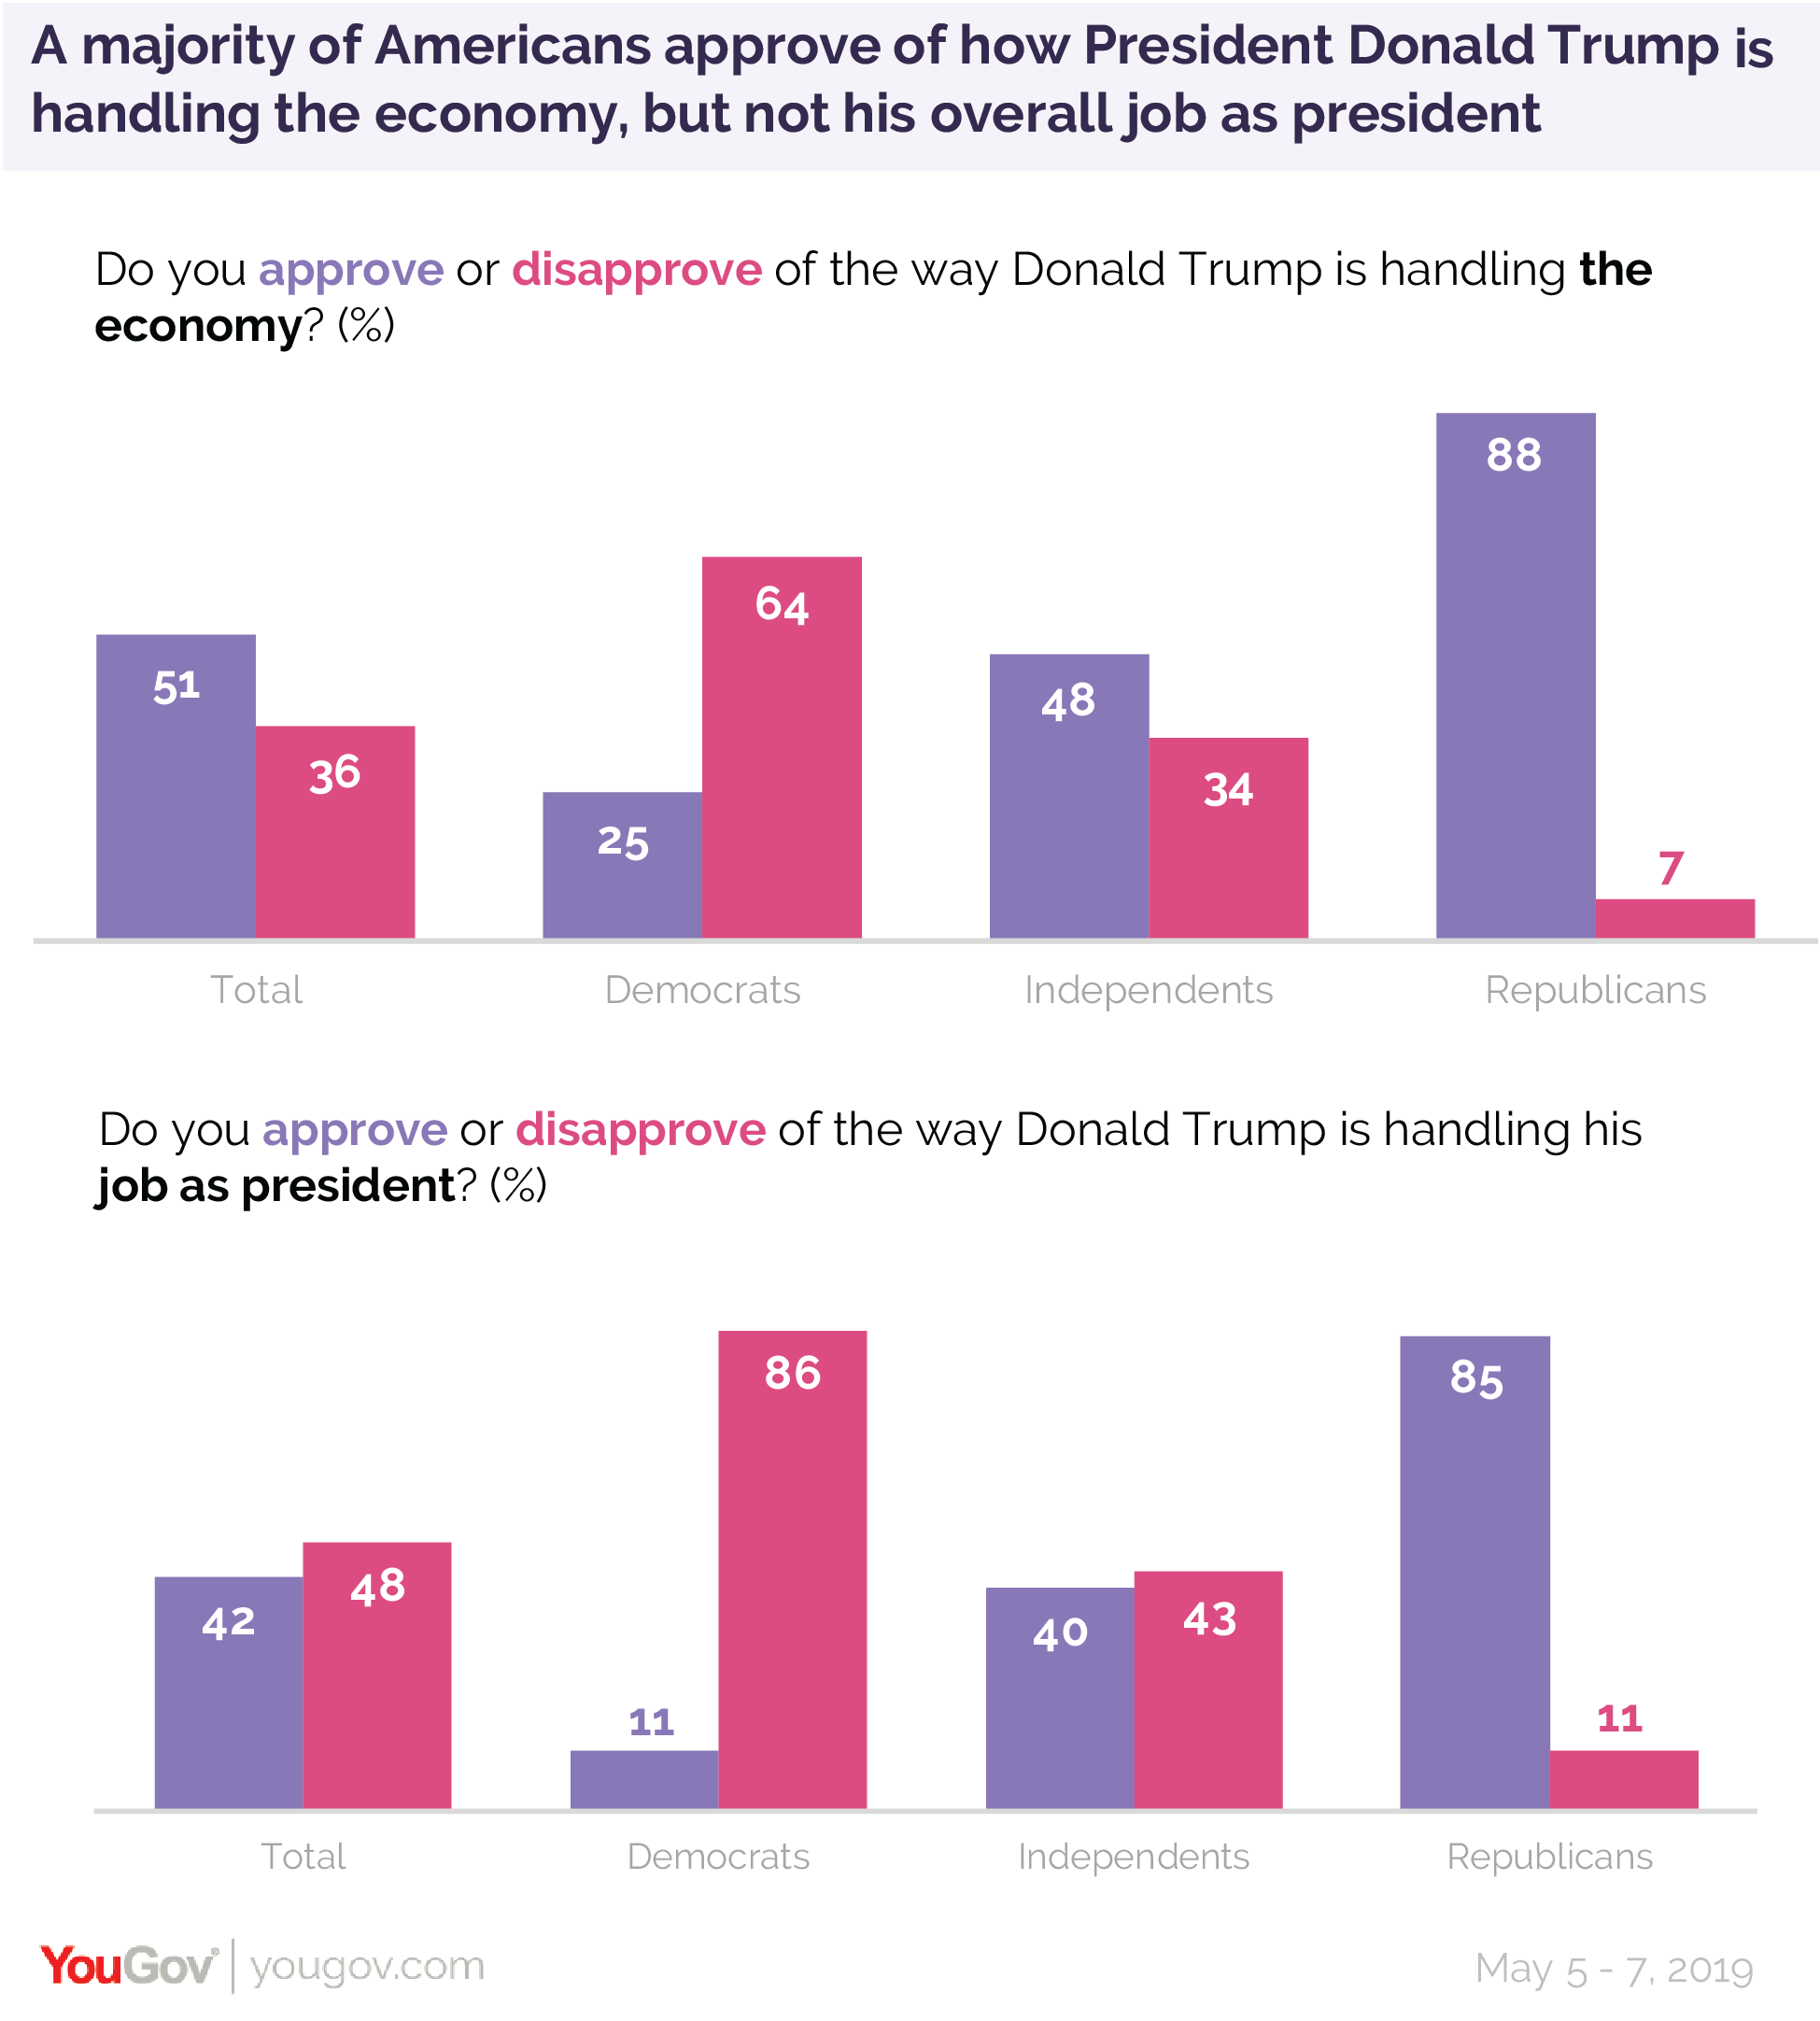 A majority of Americans approve of how President Donald Trump is handling the economy but not his overall job as president